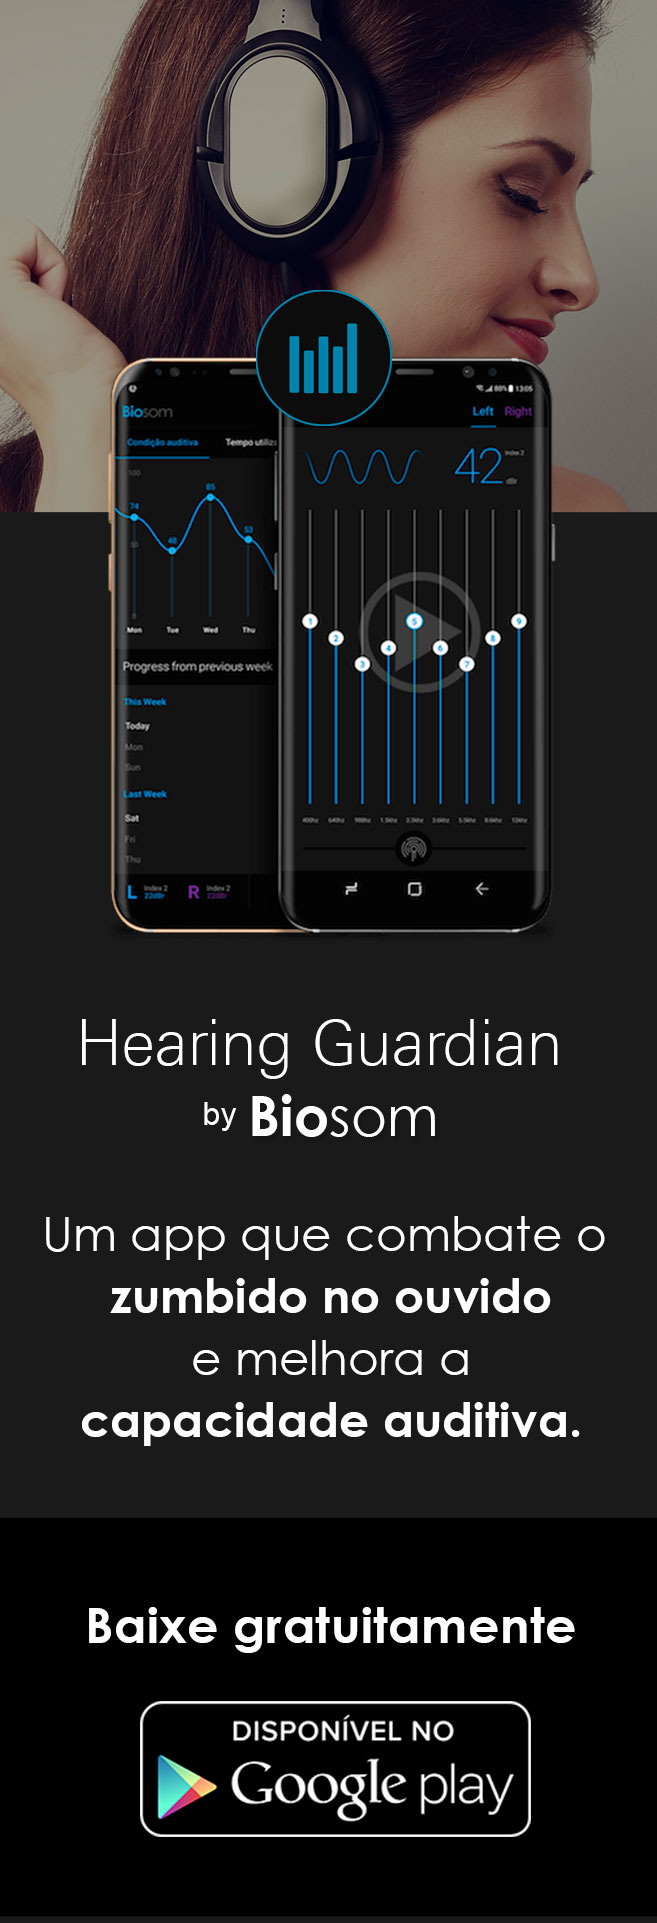 Hearing Guardian Zumbido no Ouvido download